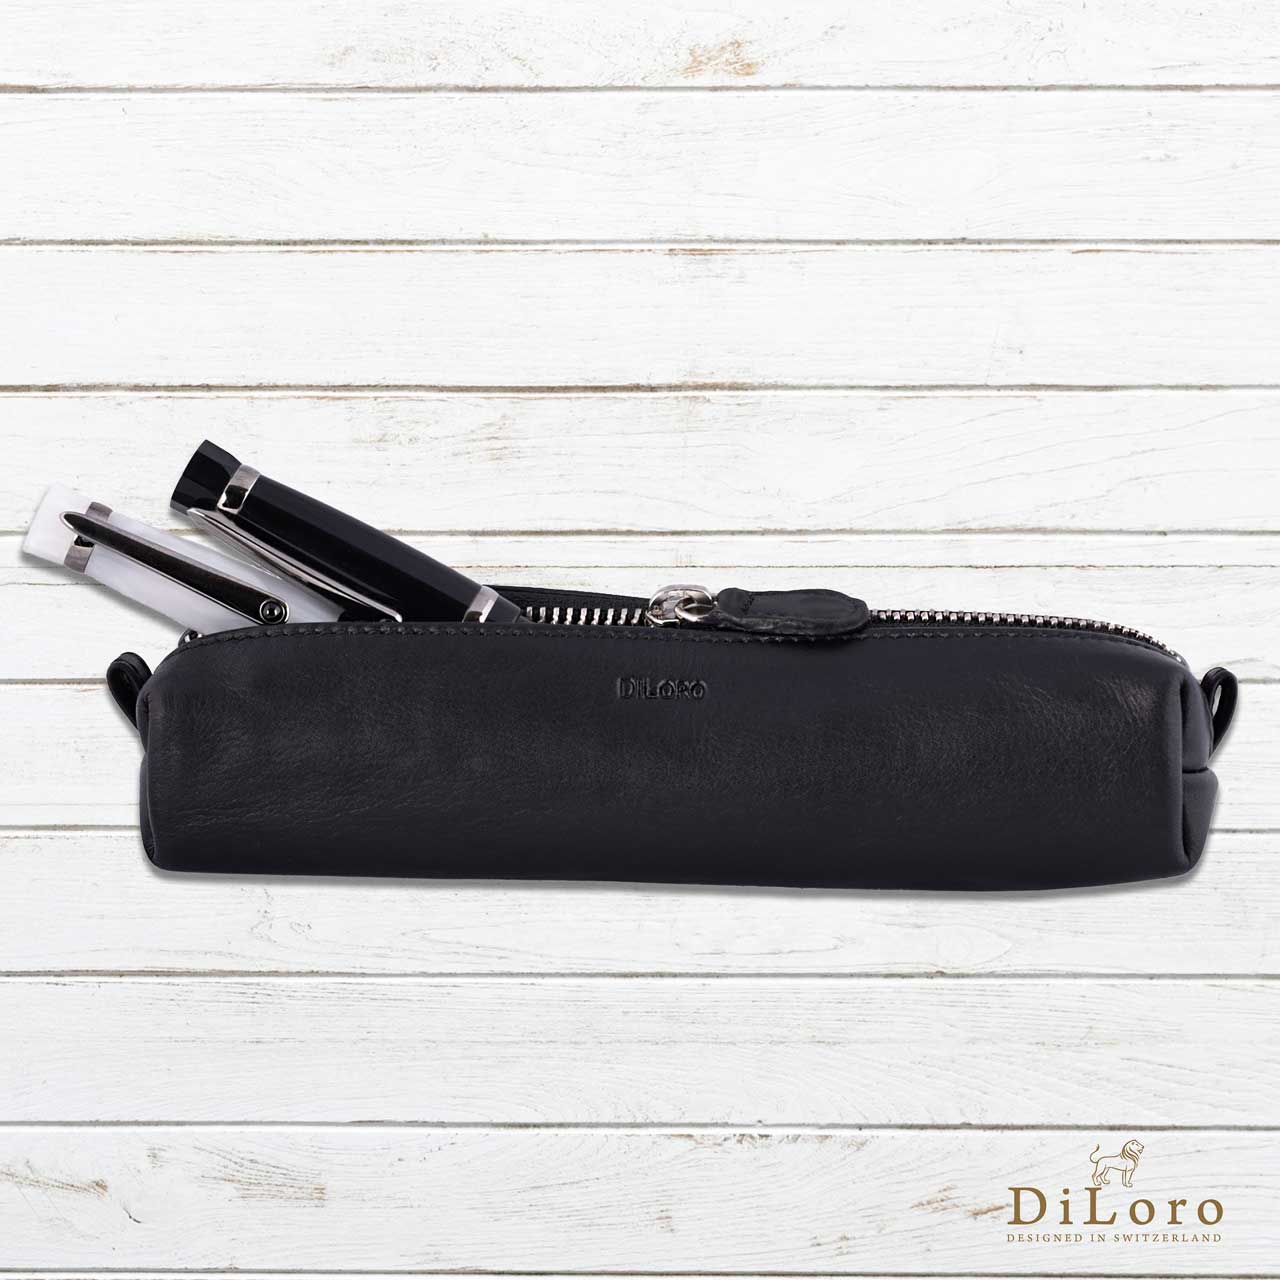 DiLoro Pen & Pencil Case: YKK zippered pencil, pen case made from top quality, full grain nappa leather. Ideal for when you travel to keep your favorite pen, pencils, fountain pen, calligraphy pens, gel pens, stylus pen protected from getting scratched up